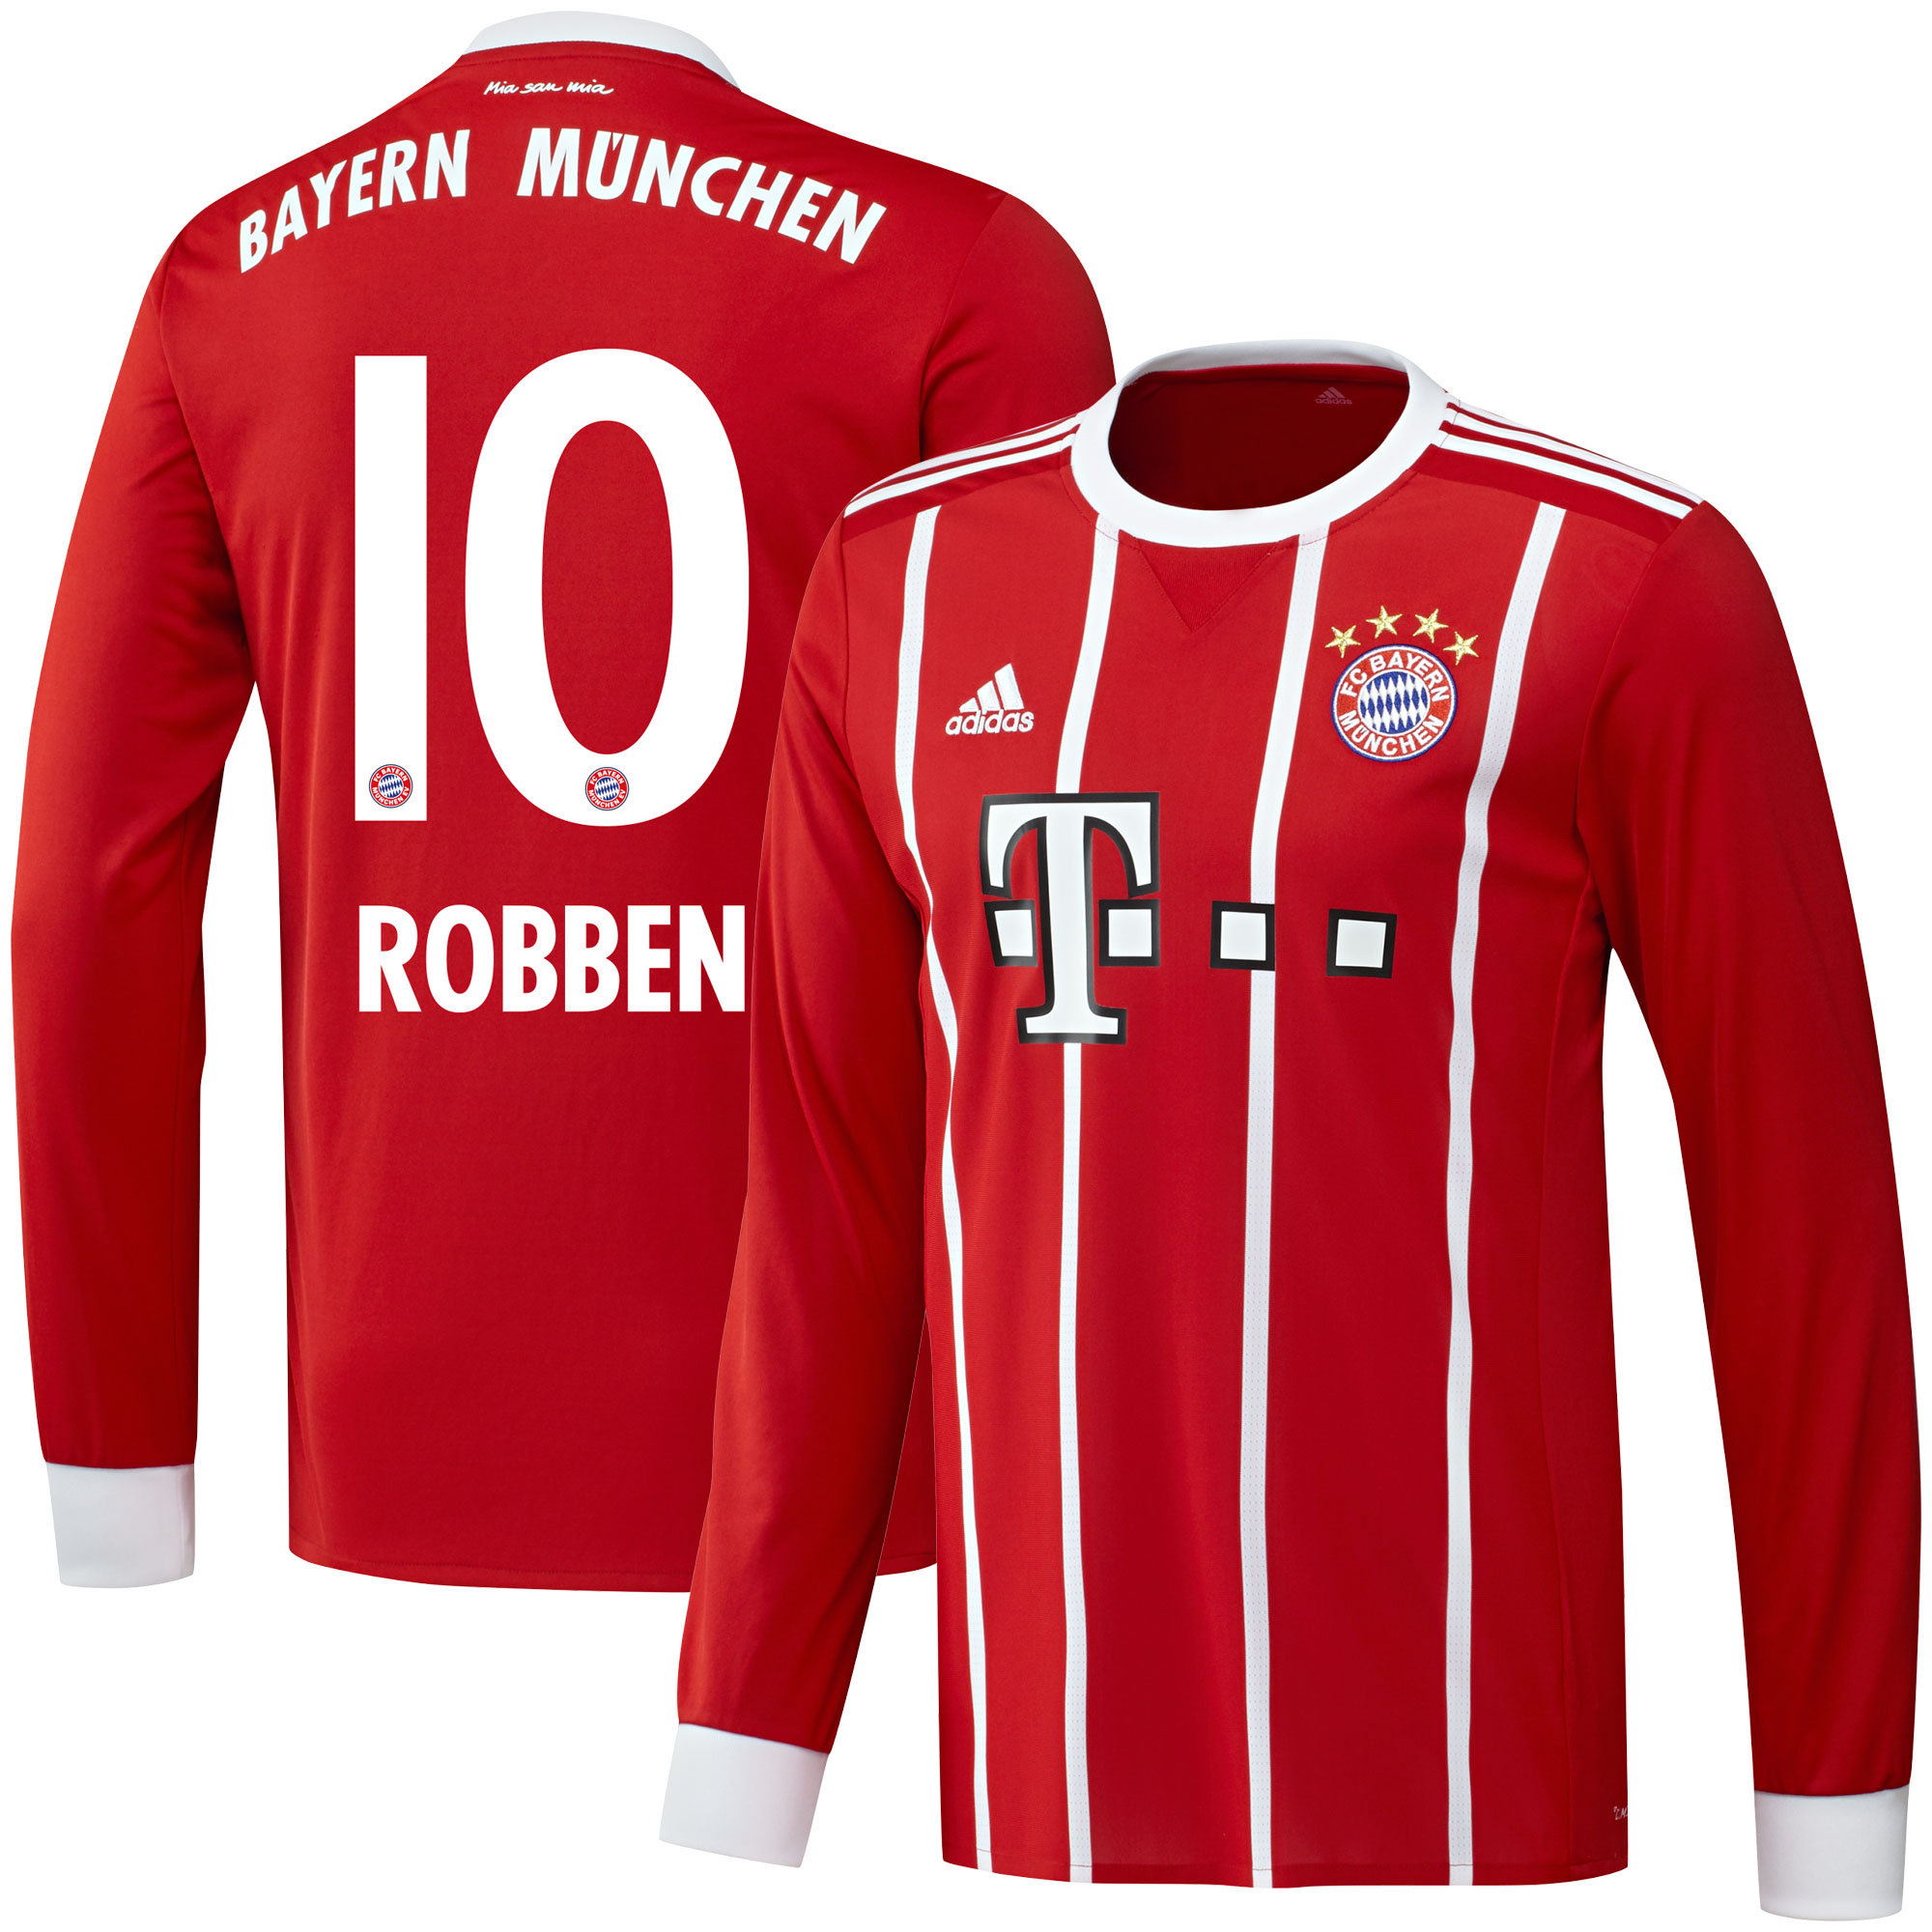 Bayern Munich Home L/S Robben Jersey 2017 / 2018 (Official Printing) - 58